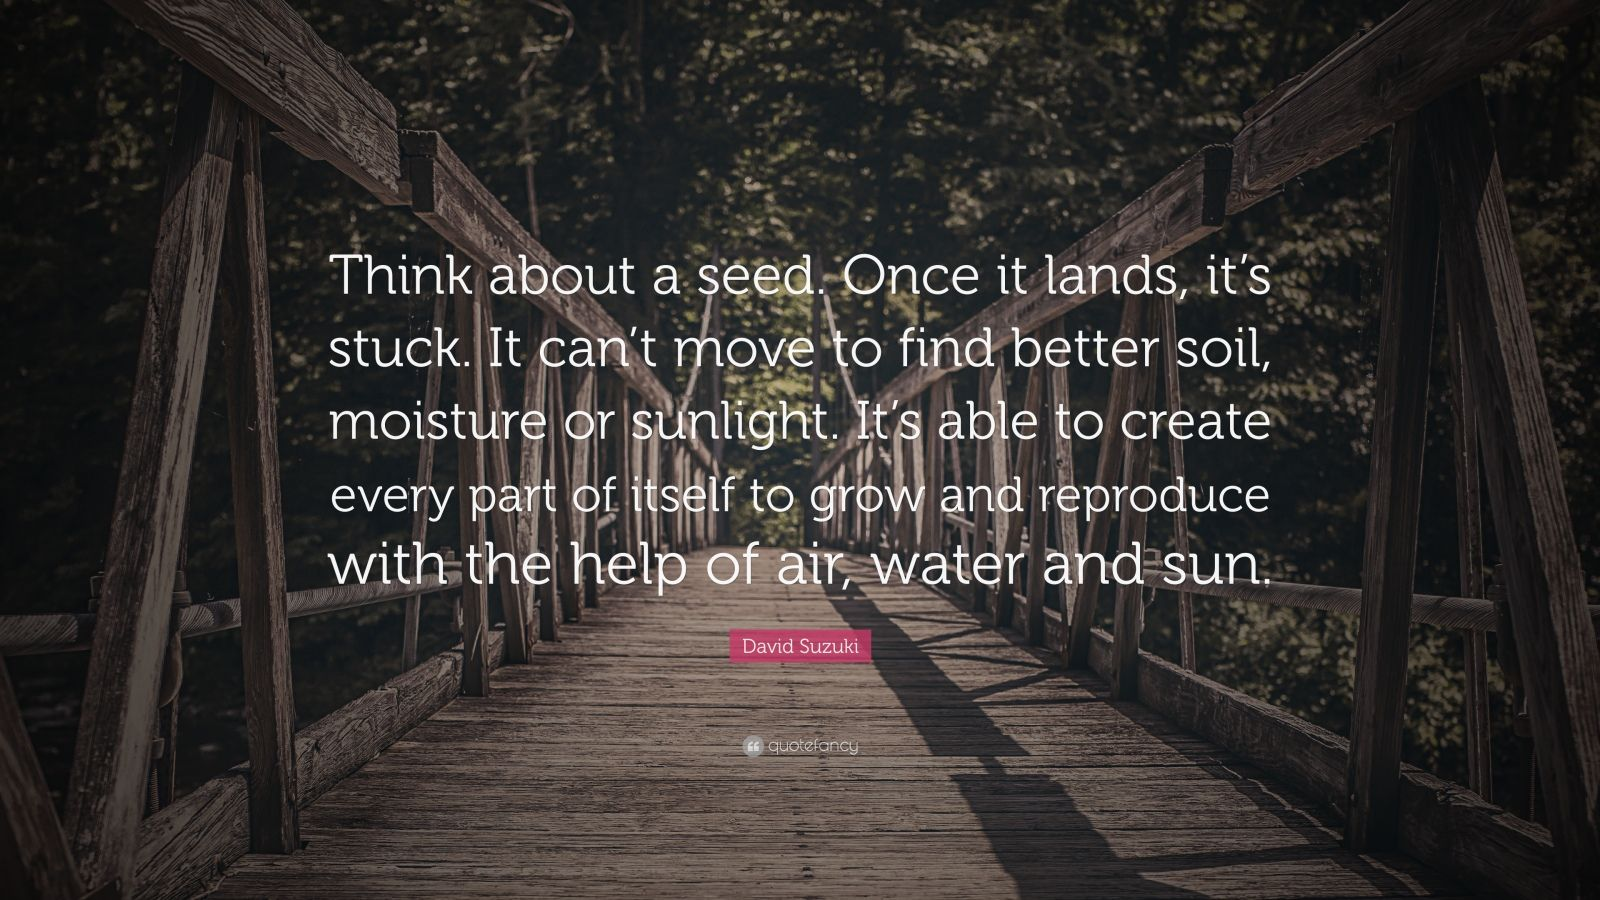 """David Suzuki Quote: """"Think about a seed. Once it lands, it's stuck. It can't move to find better soil, moisture or sunlight. It's able to create every part of itself to grow and reproduce with the help of air, water and sun."""""""